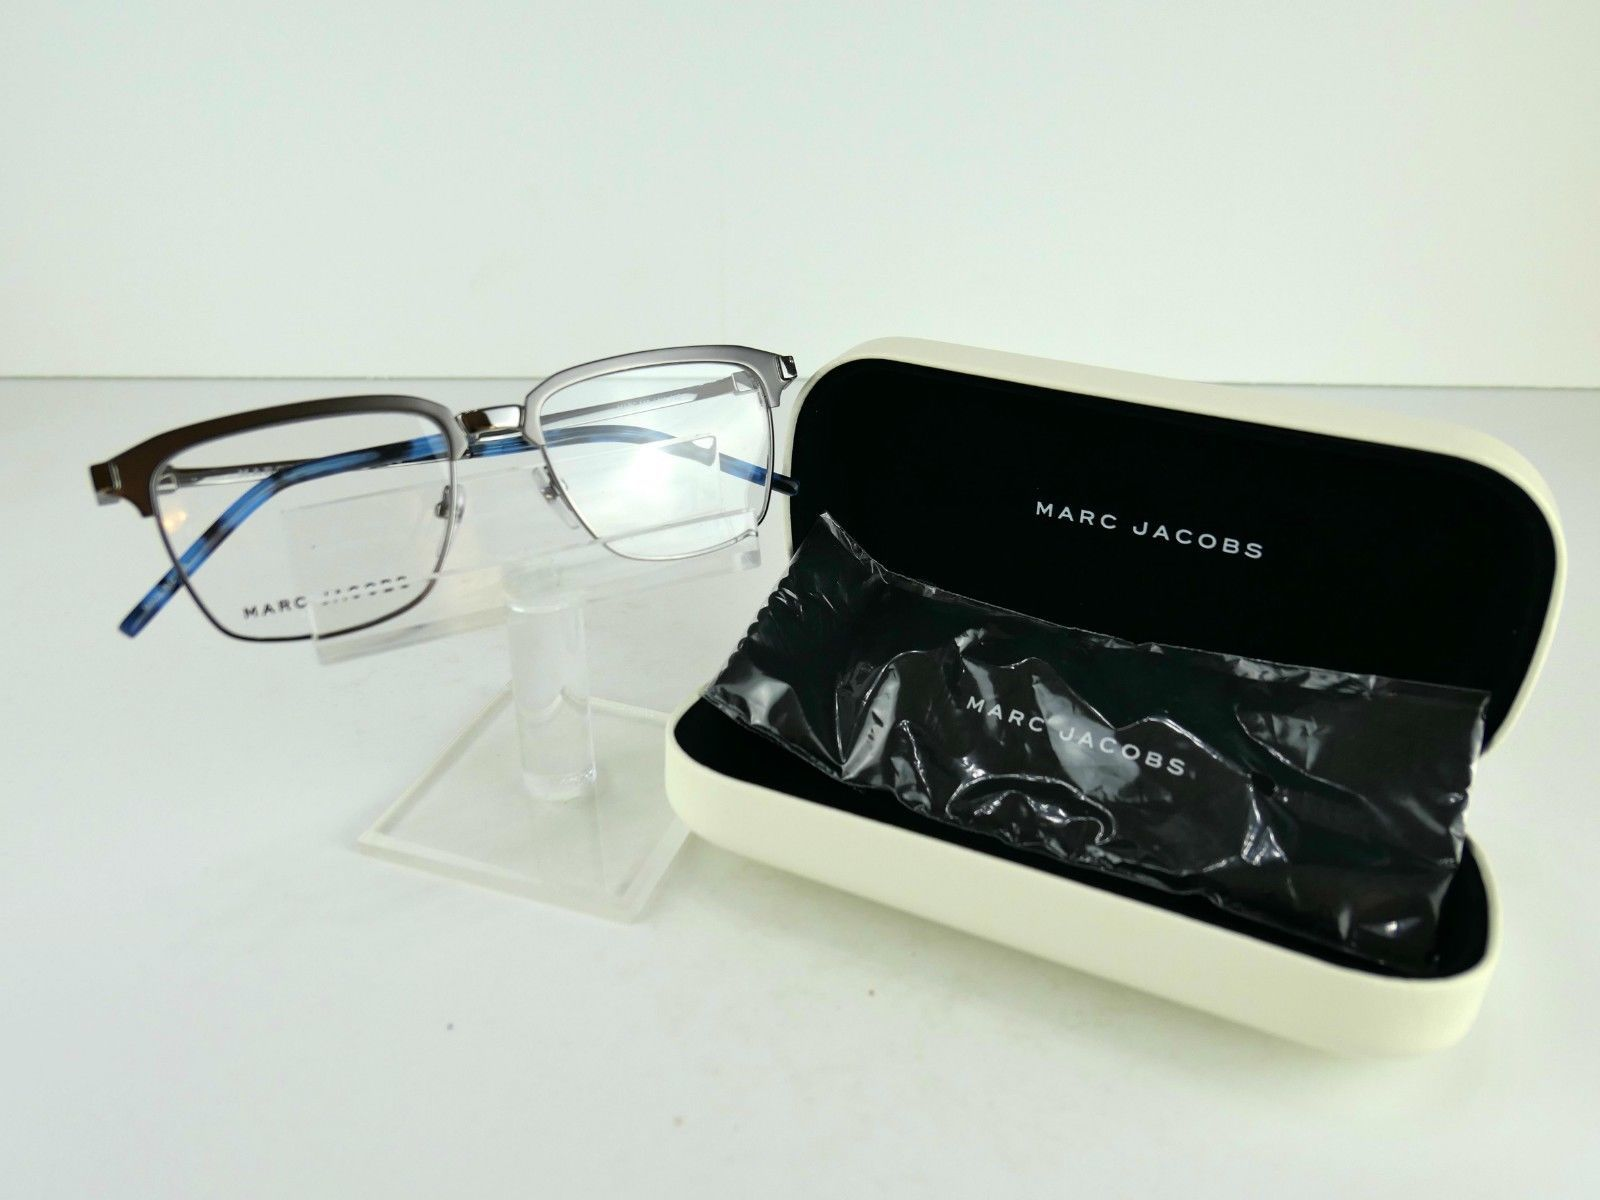 Primary image for Marc by Marc Jacobs MARC 146 (LN4) Matt Dk Ruthenium 52 x 17 145 Eyeglass Frames